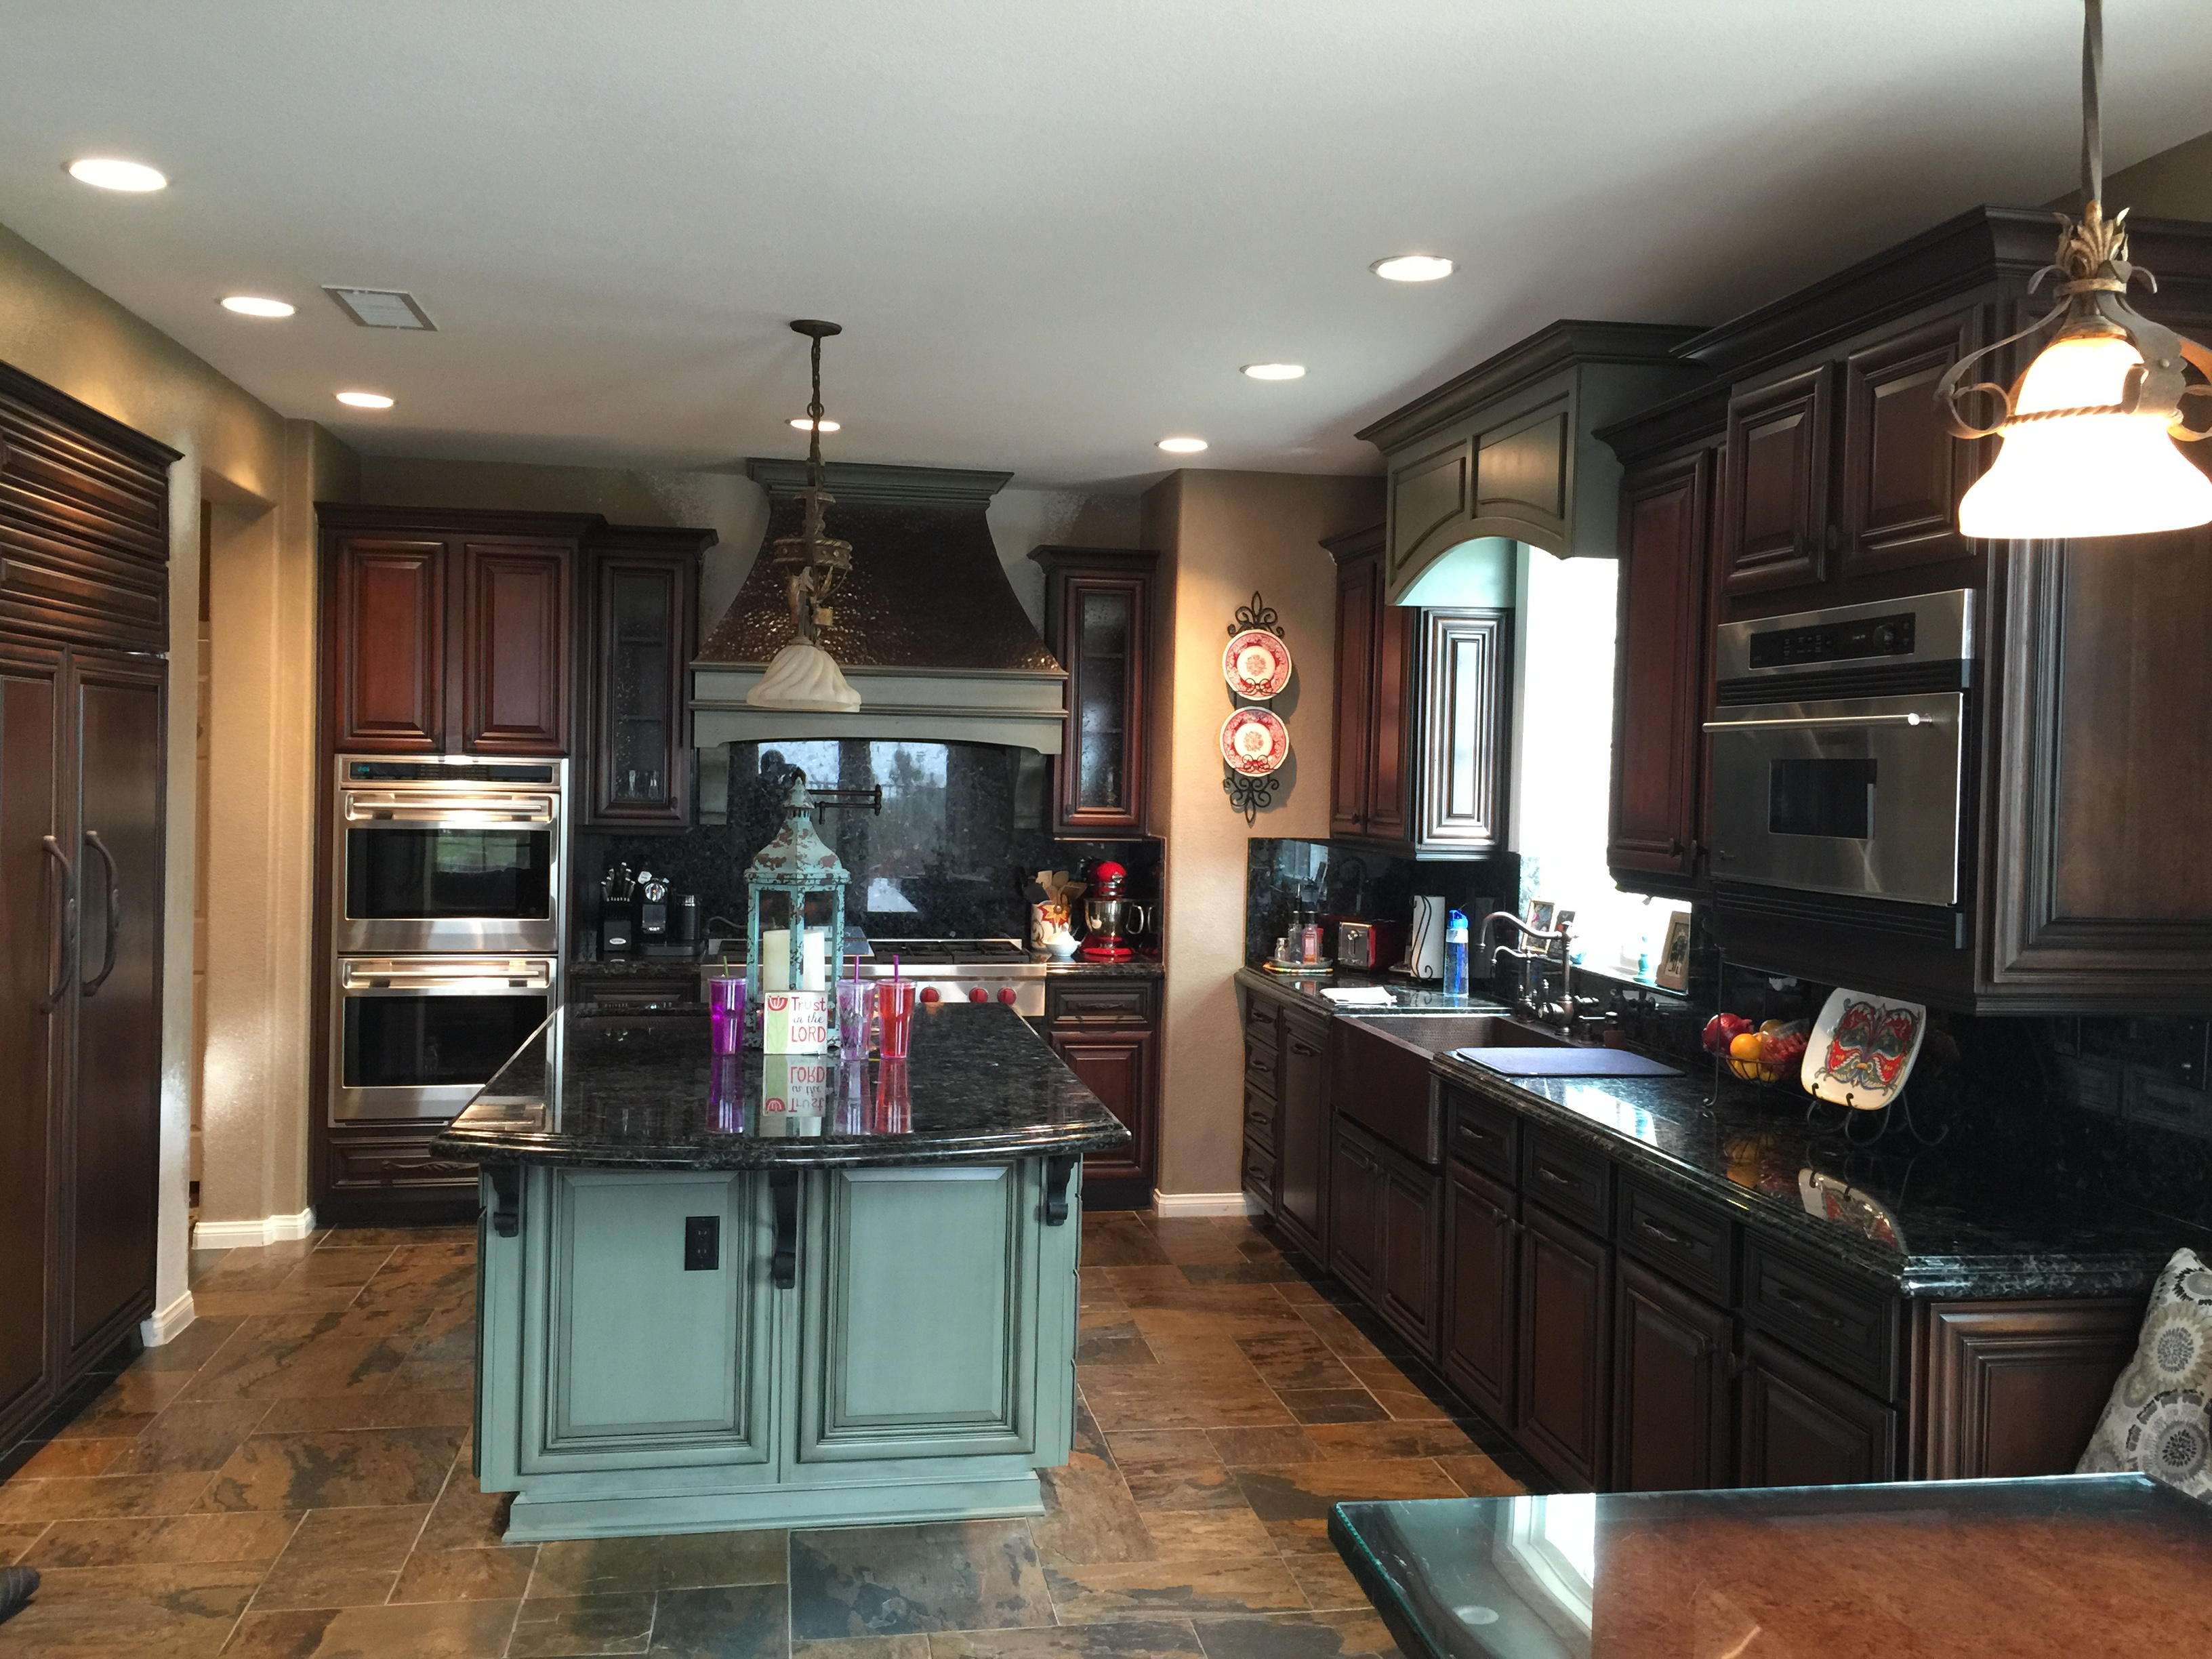 Resurfaced kitchen cabinets